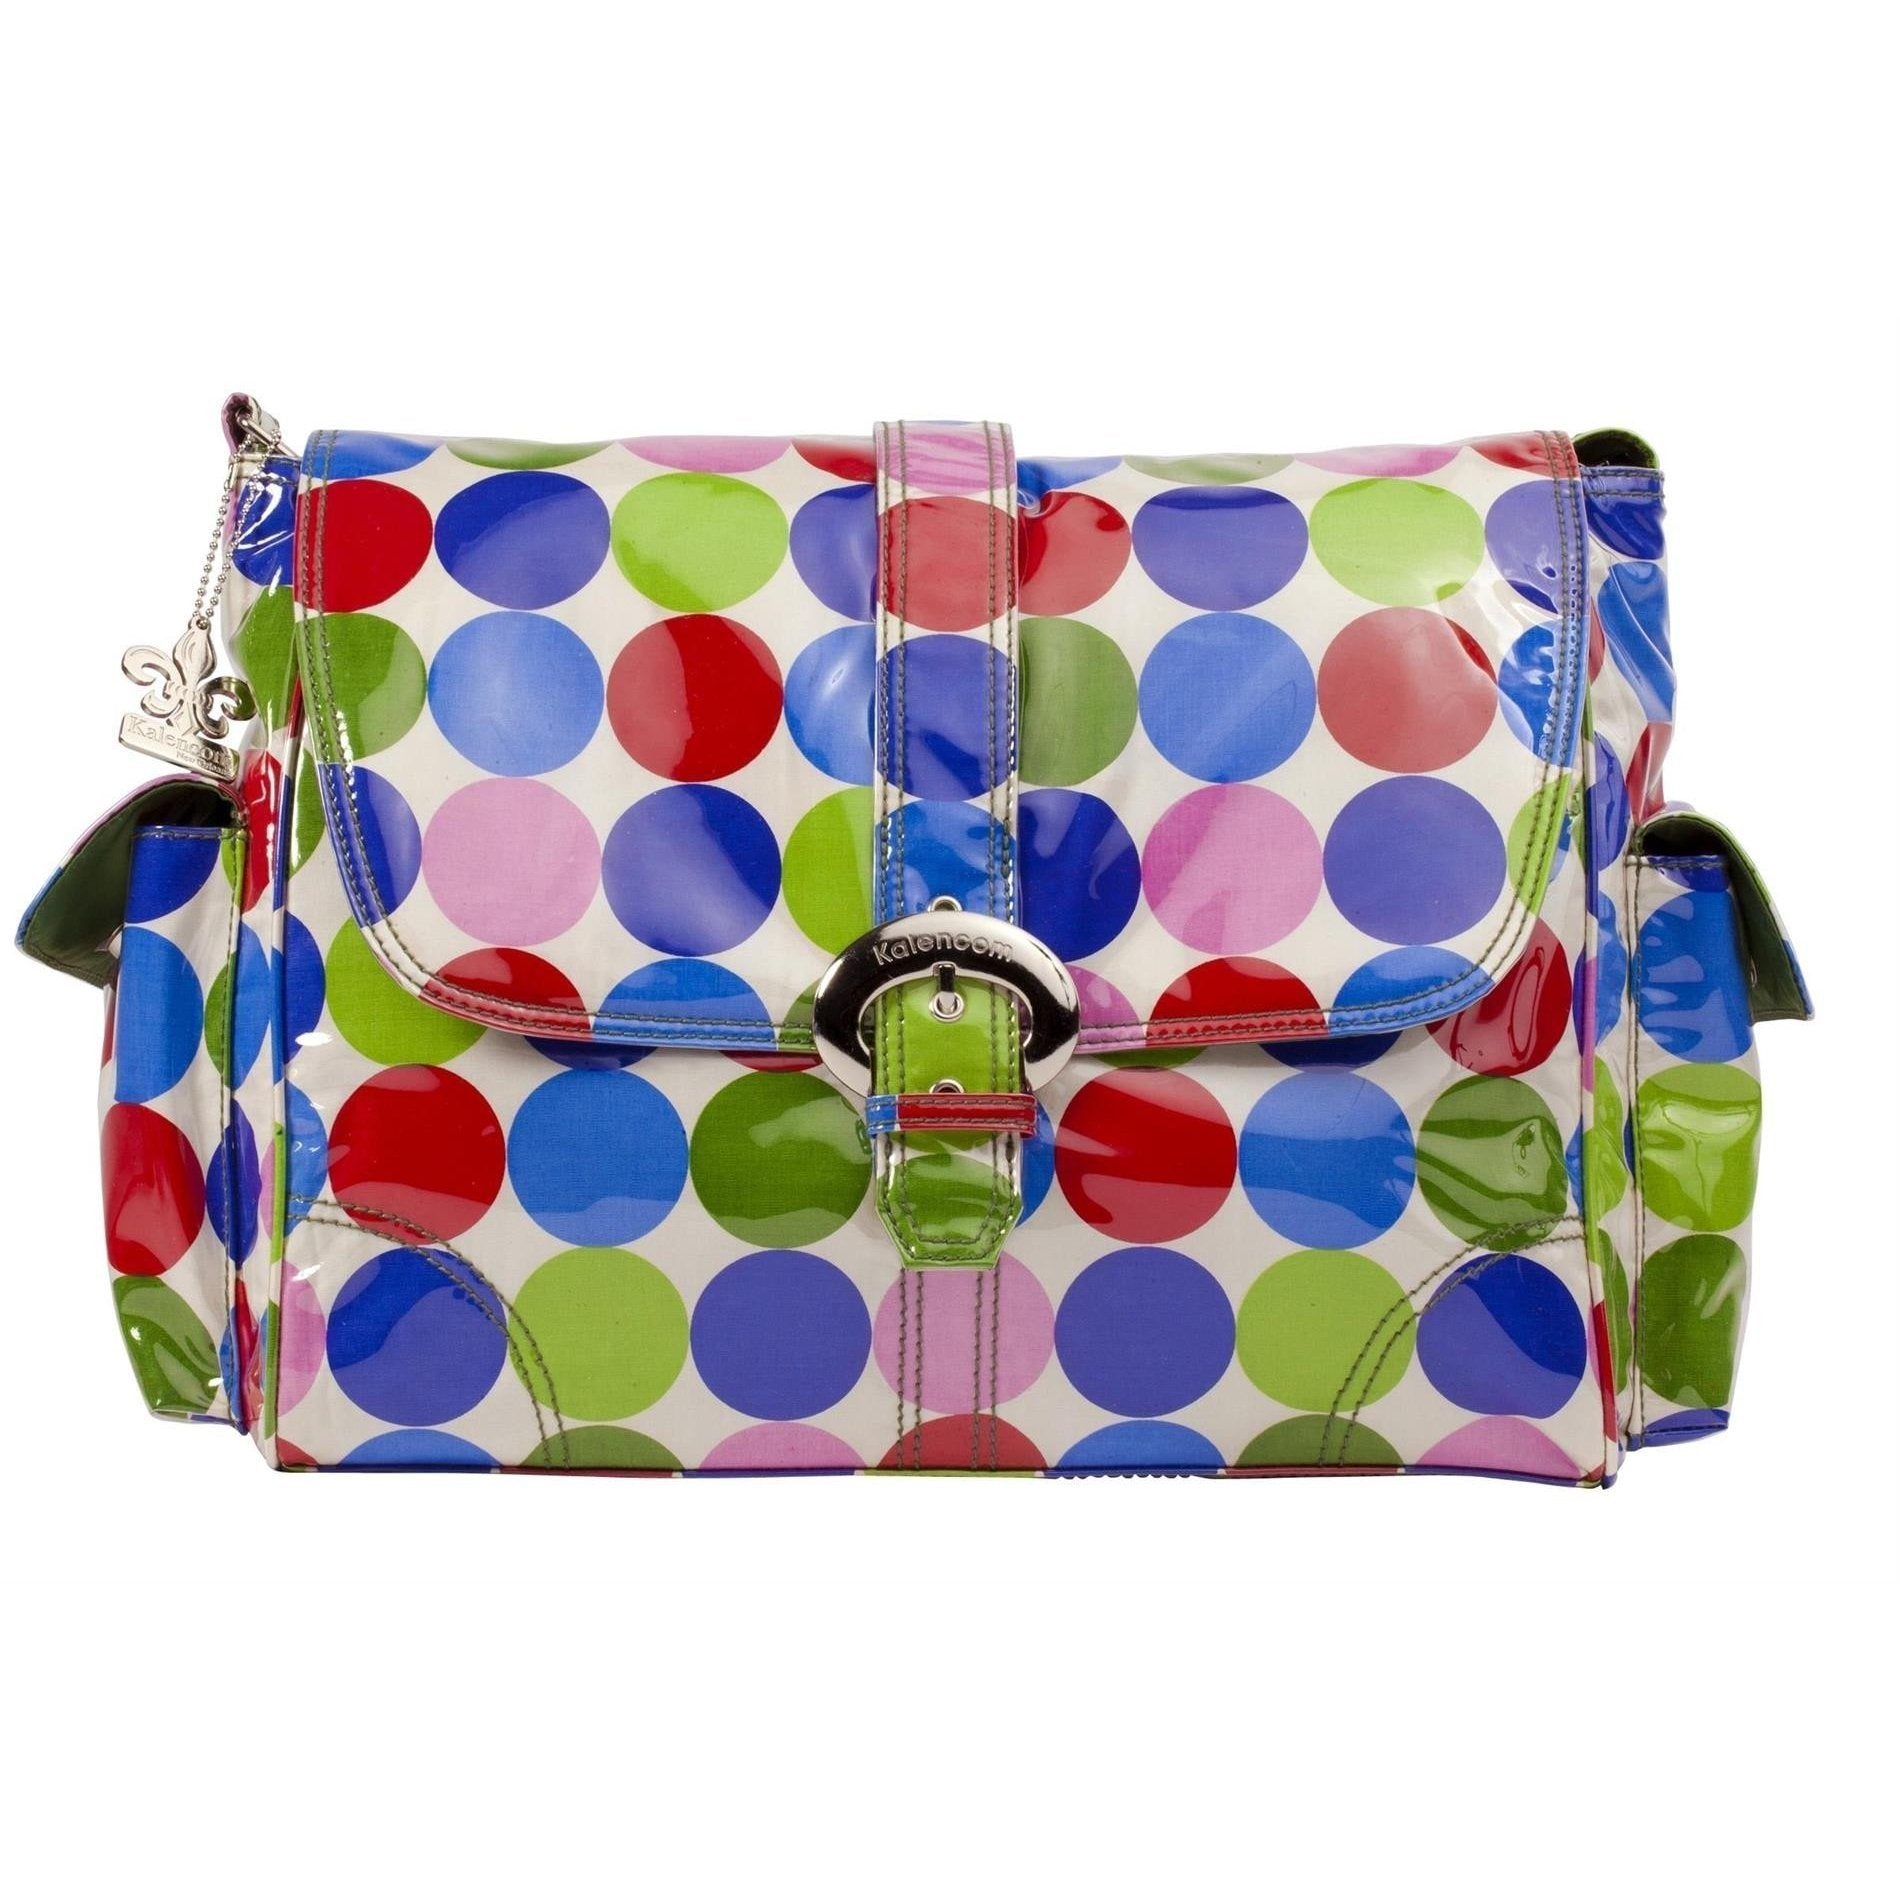 Jazz Dots Laminated Buckle Diaper Bag | Style 2960 - Kalencom-Diaper Bags-Jack and Jill Boutique